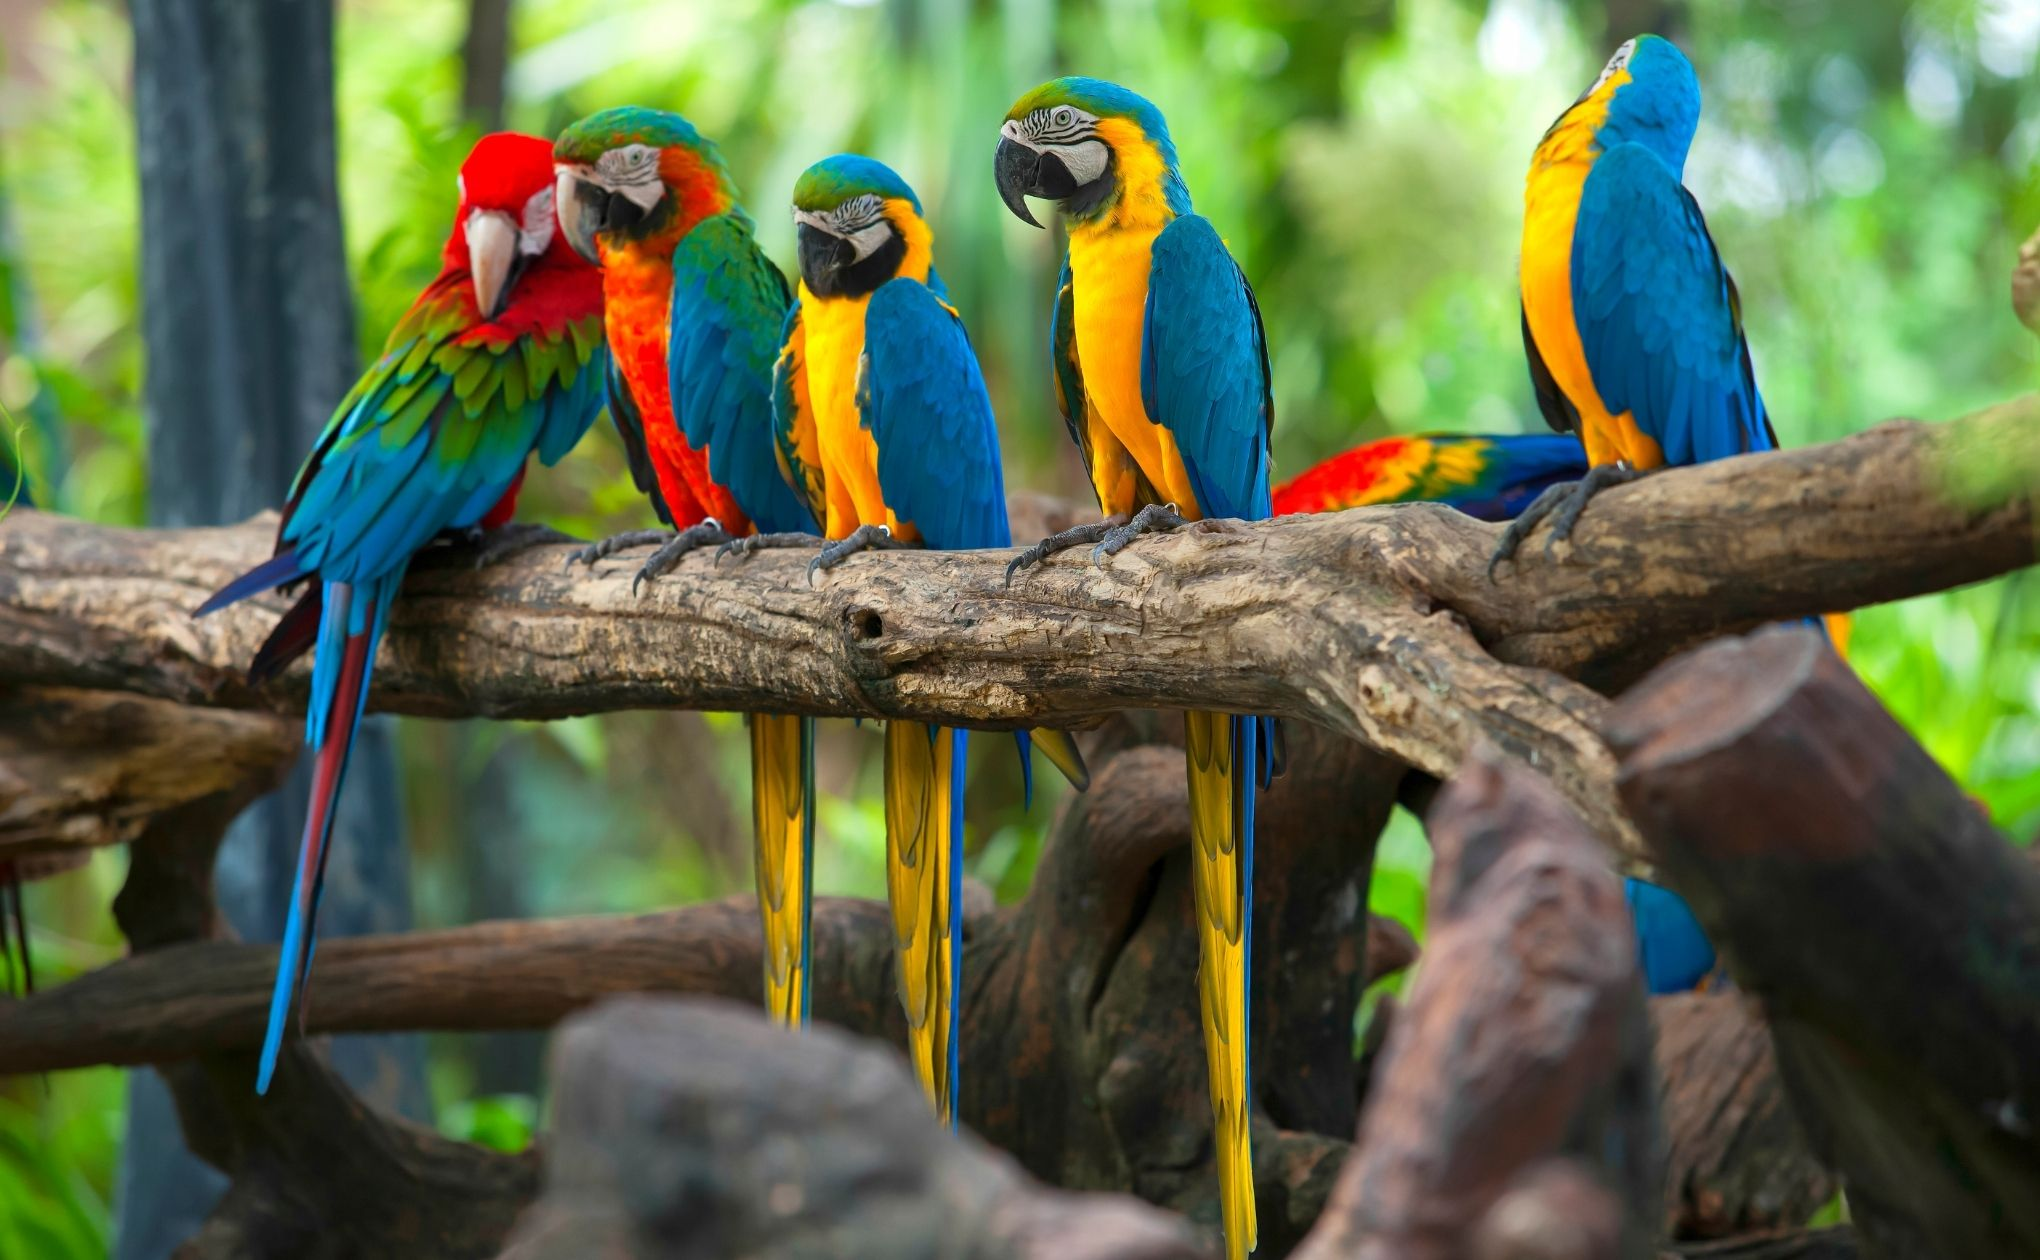 How do Parrot learn Mimicking quickly